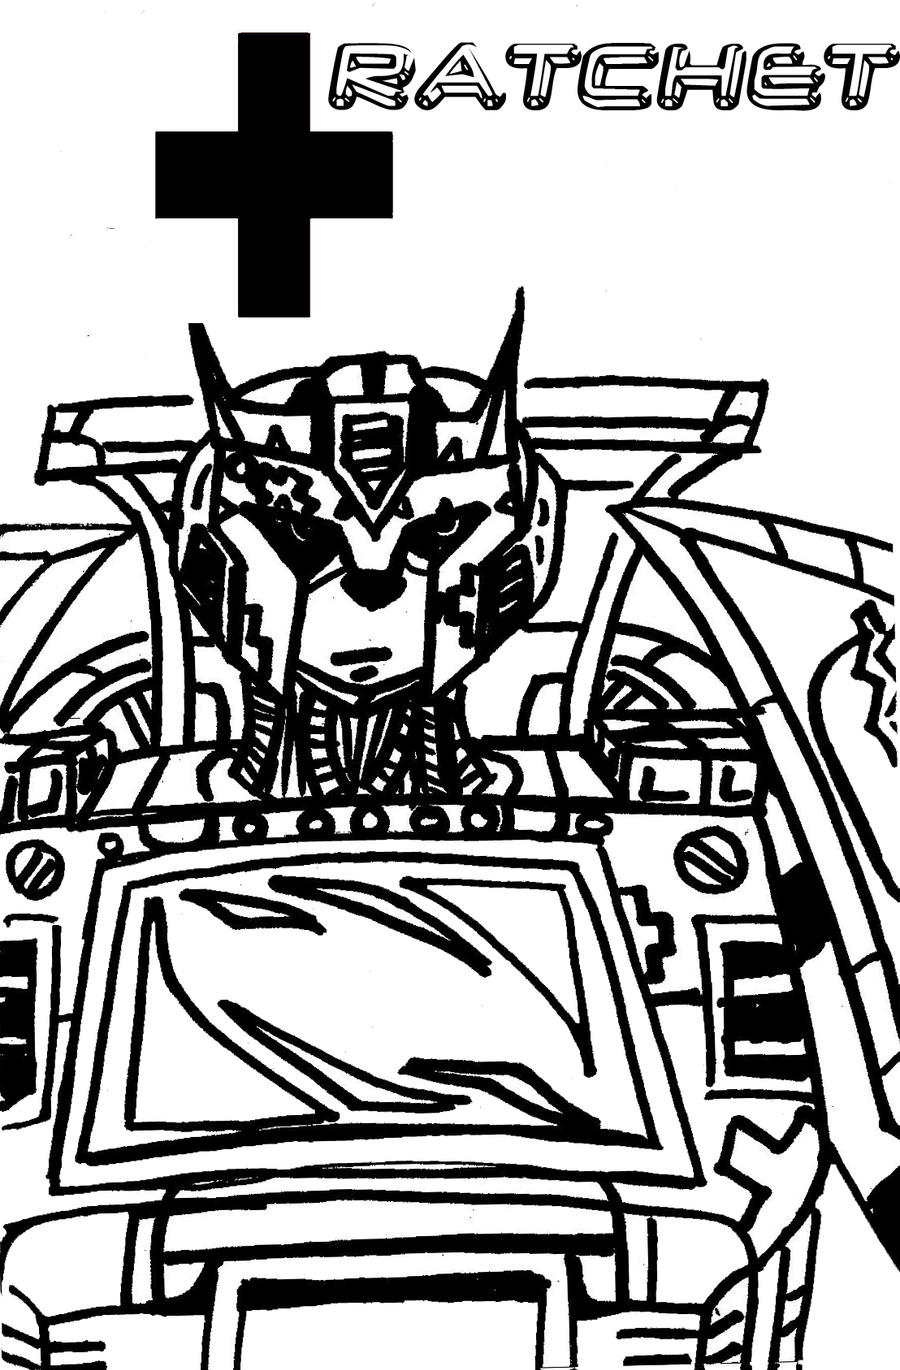 Transformers ratchet coloring coloring pages for Ratchet coloring pages